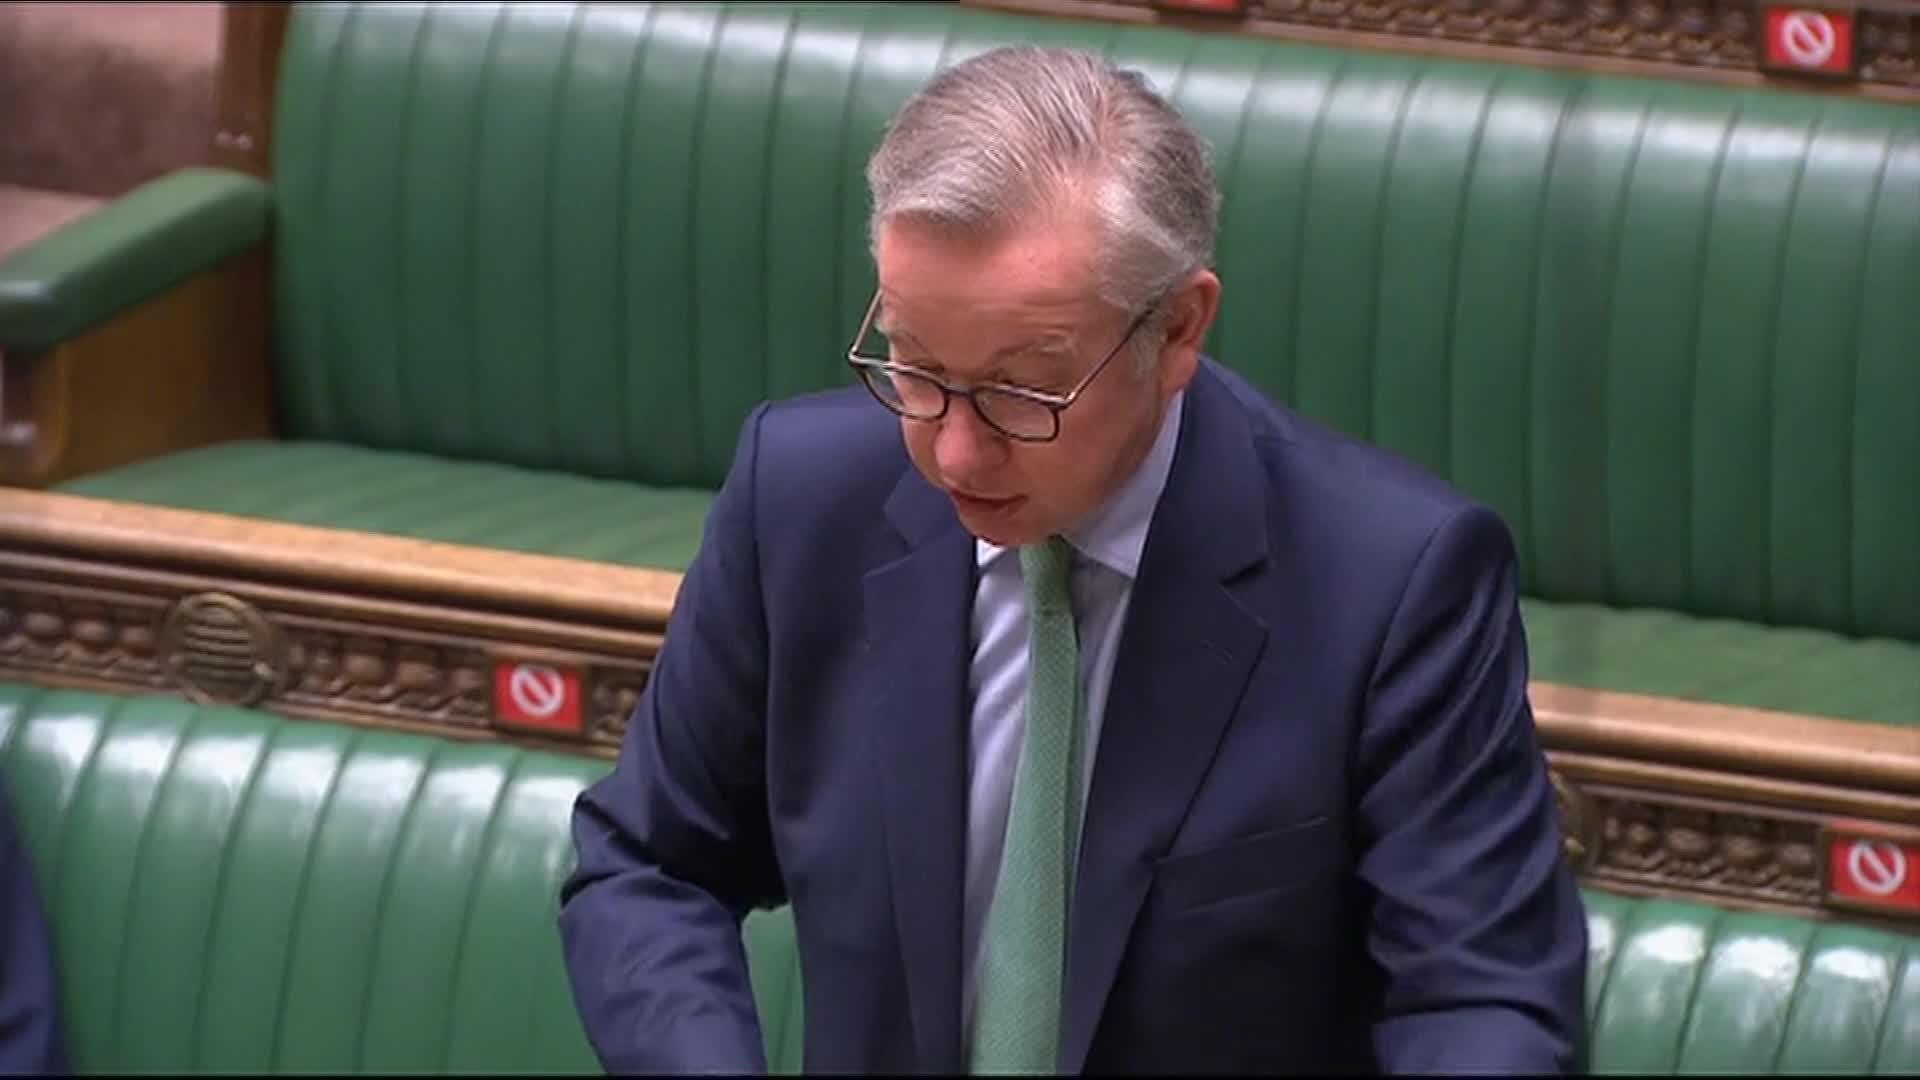 'You're better than that' - Gove interrupted while attacking Labour's Brexit stance